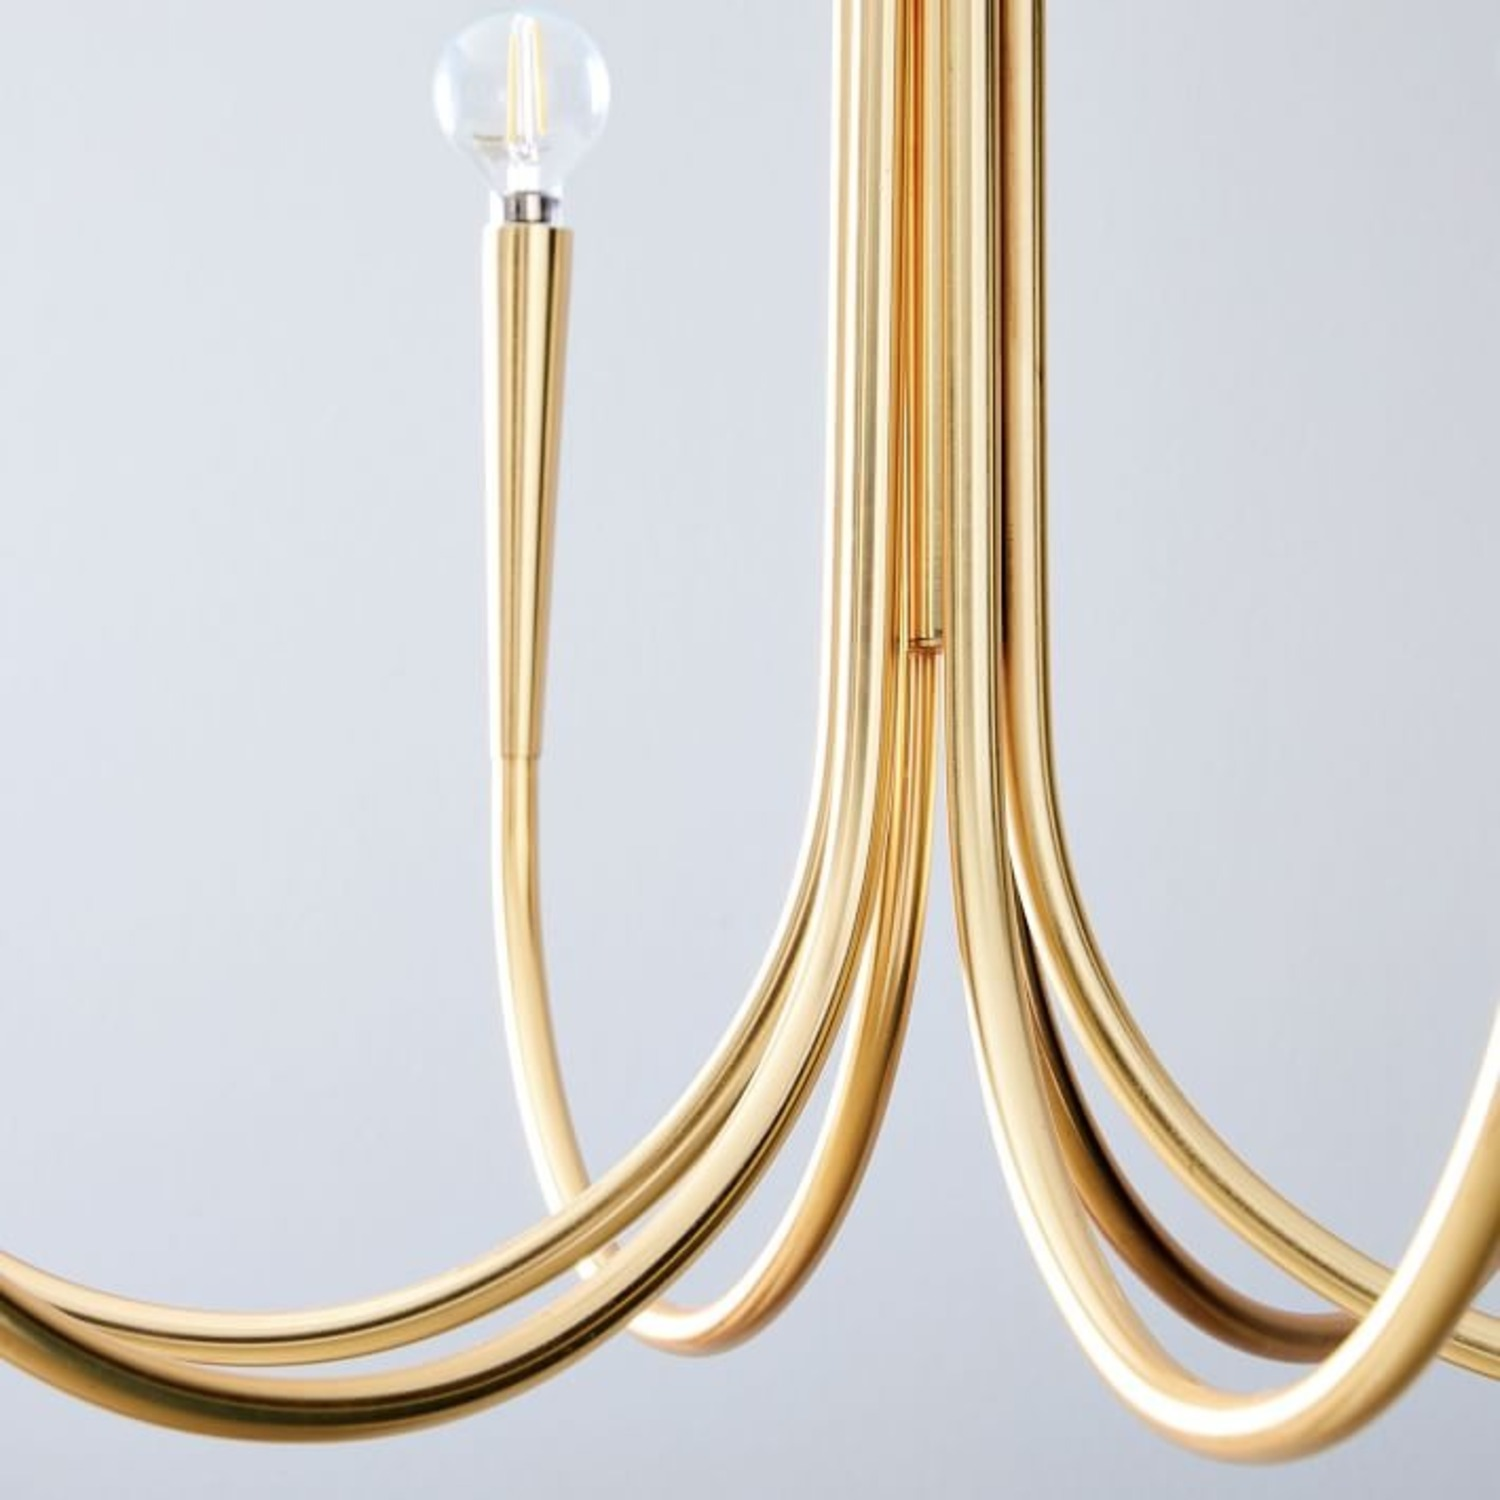 West Elm Swoop Arm Chandelier, Small, Brass - image-2